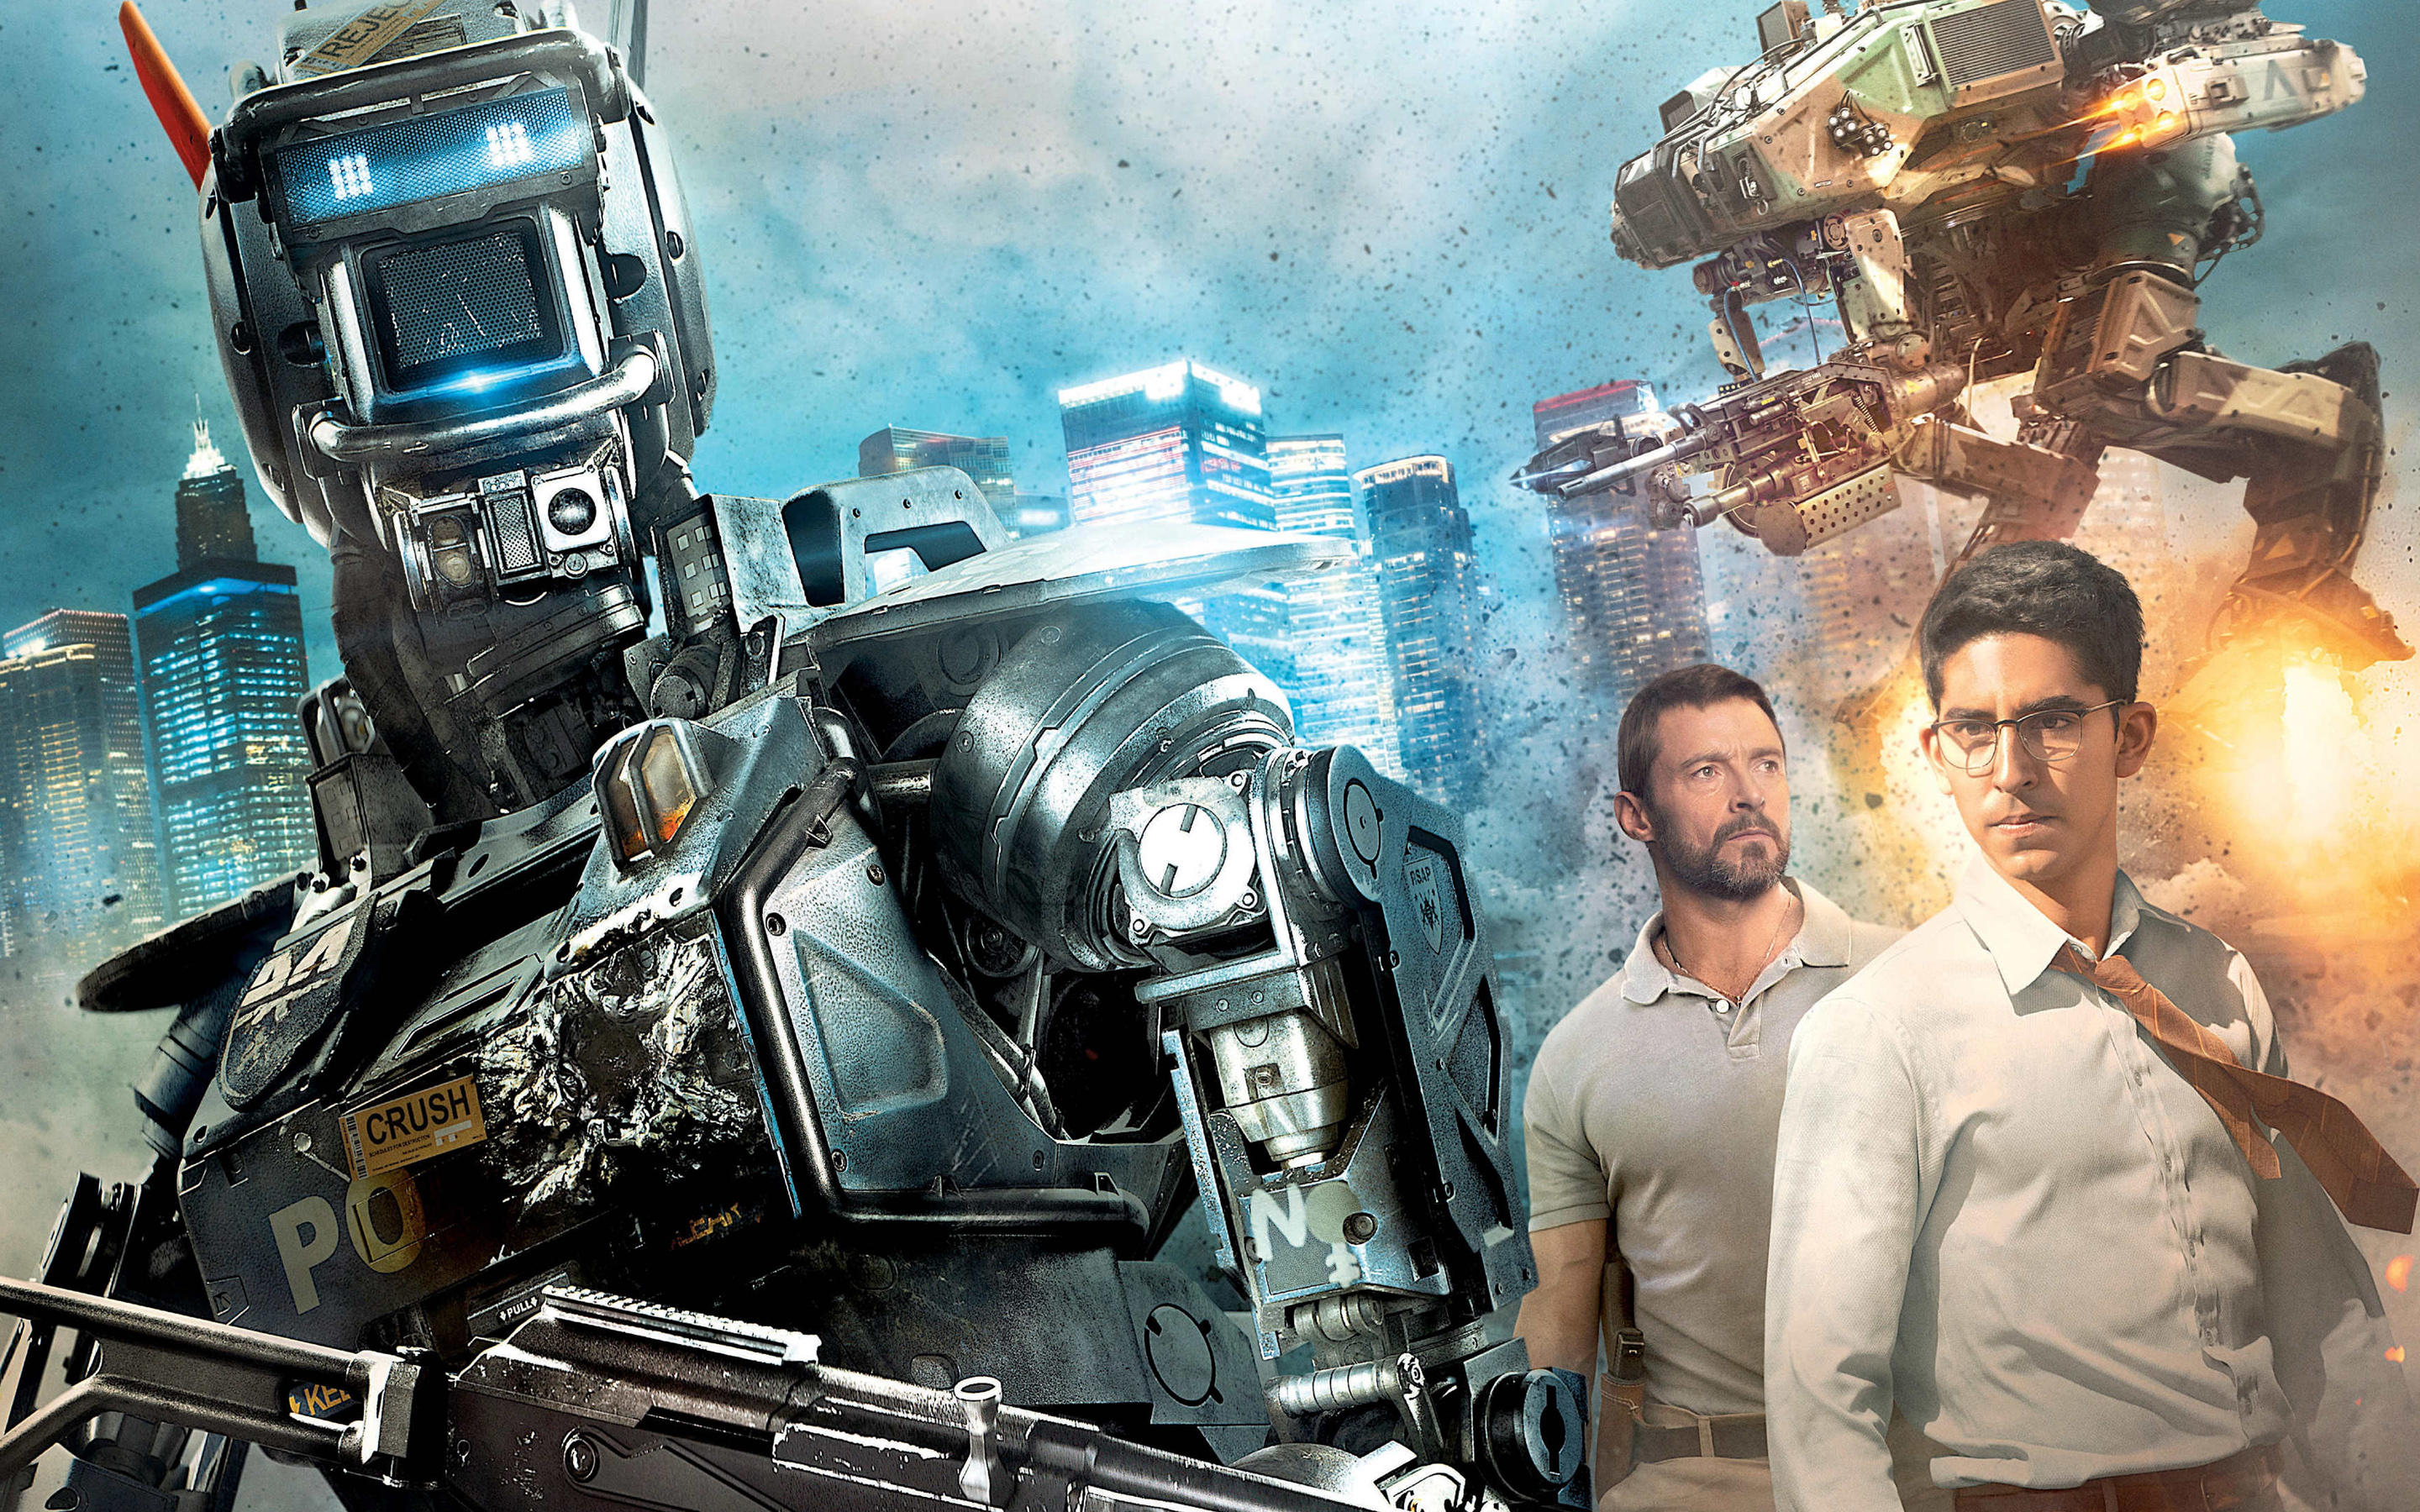 chappie movie   Hugh Jackman Wallpaper 38502276 2880x1800